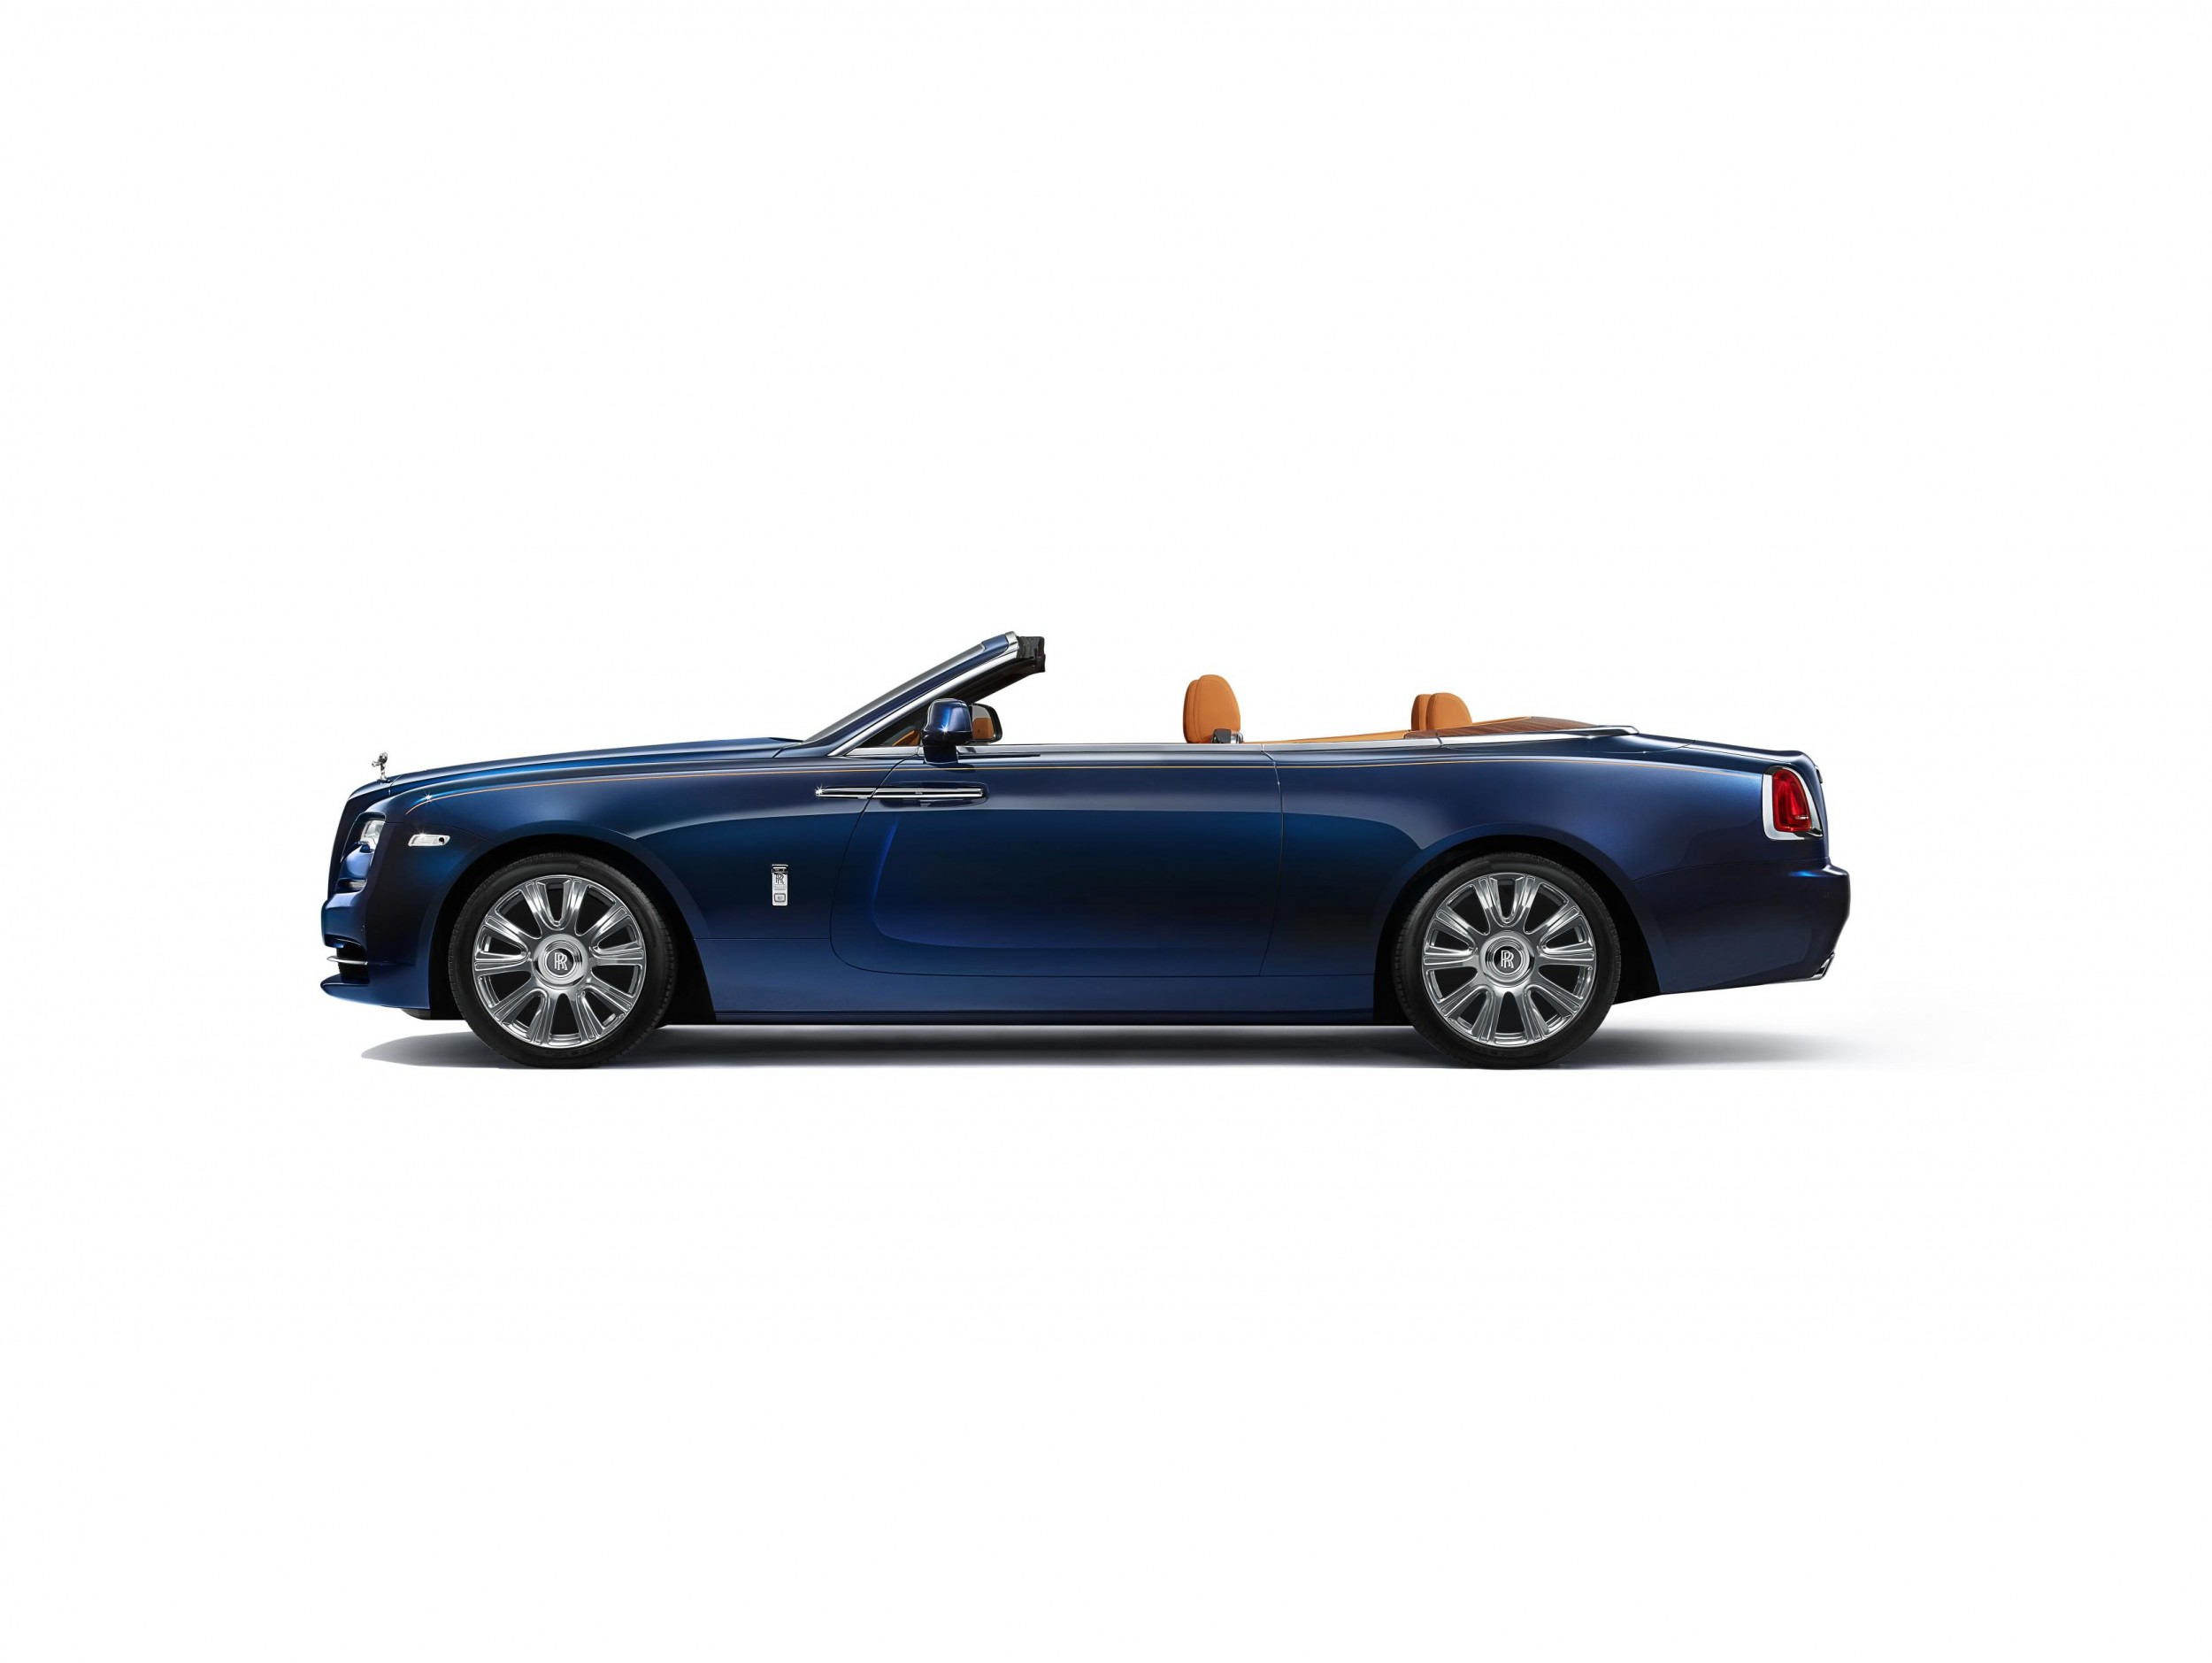 Rolls Royce Pictures Wallpapers Archives Automotive News Car